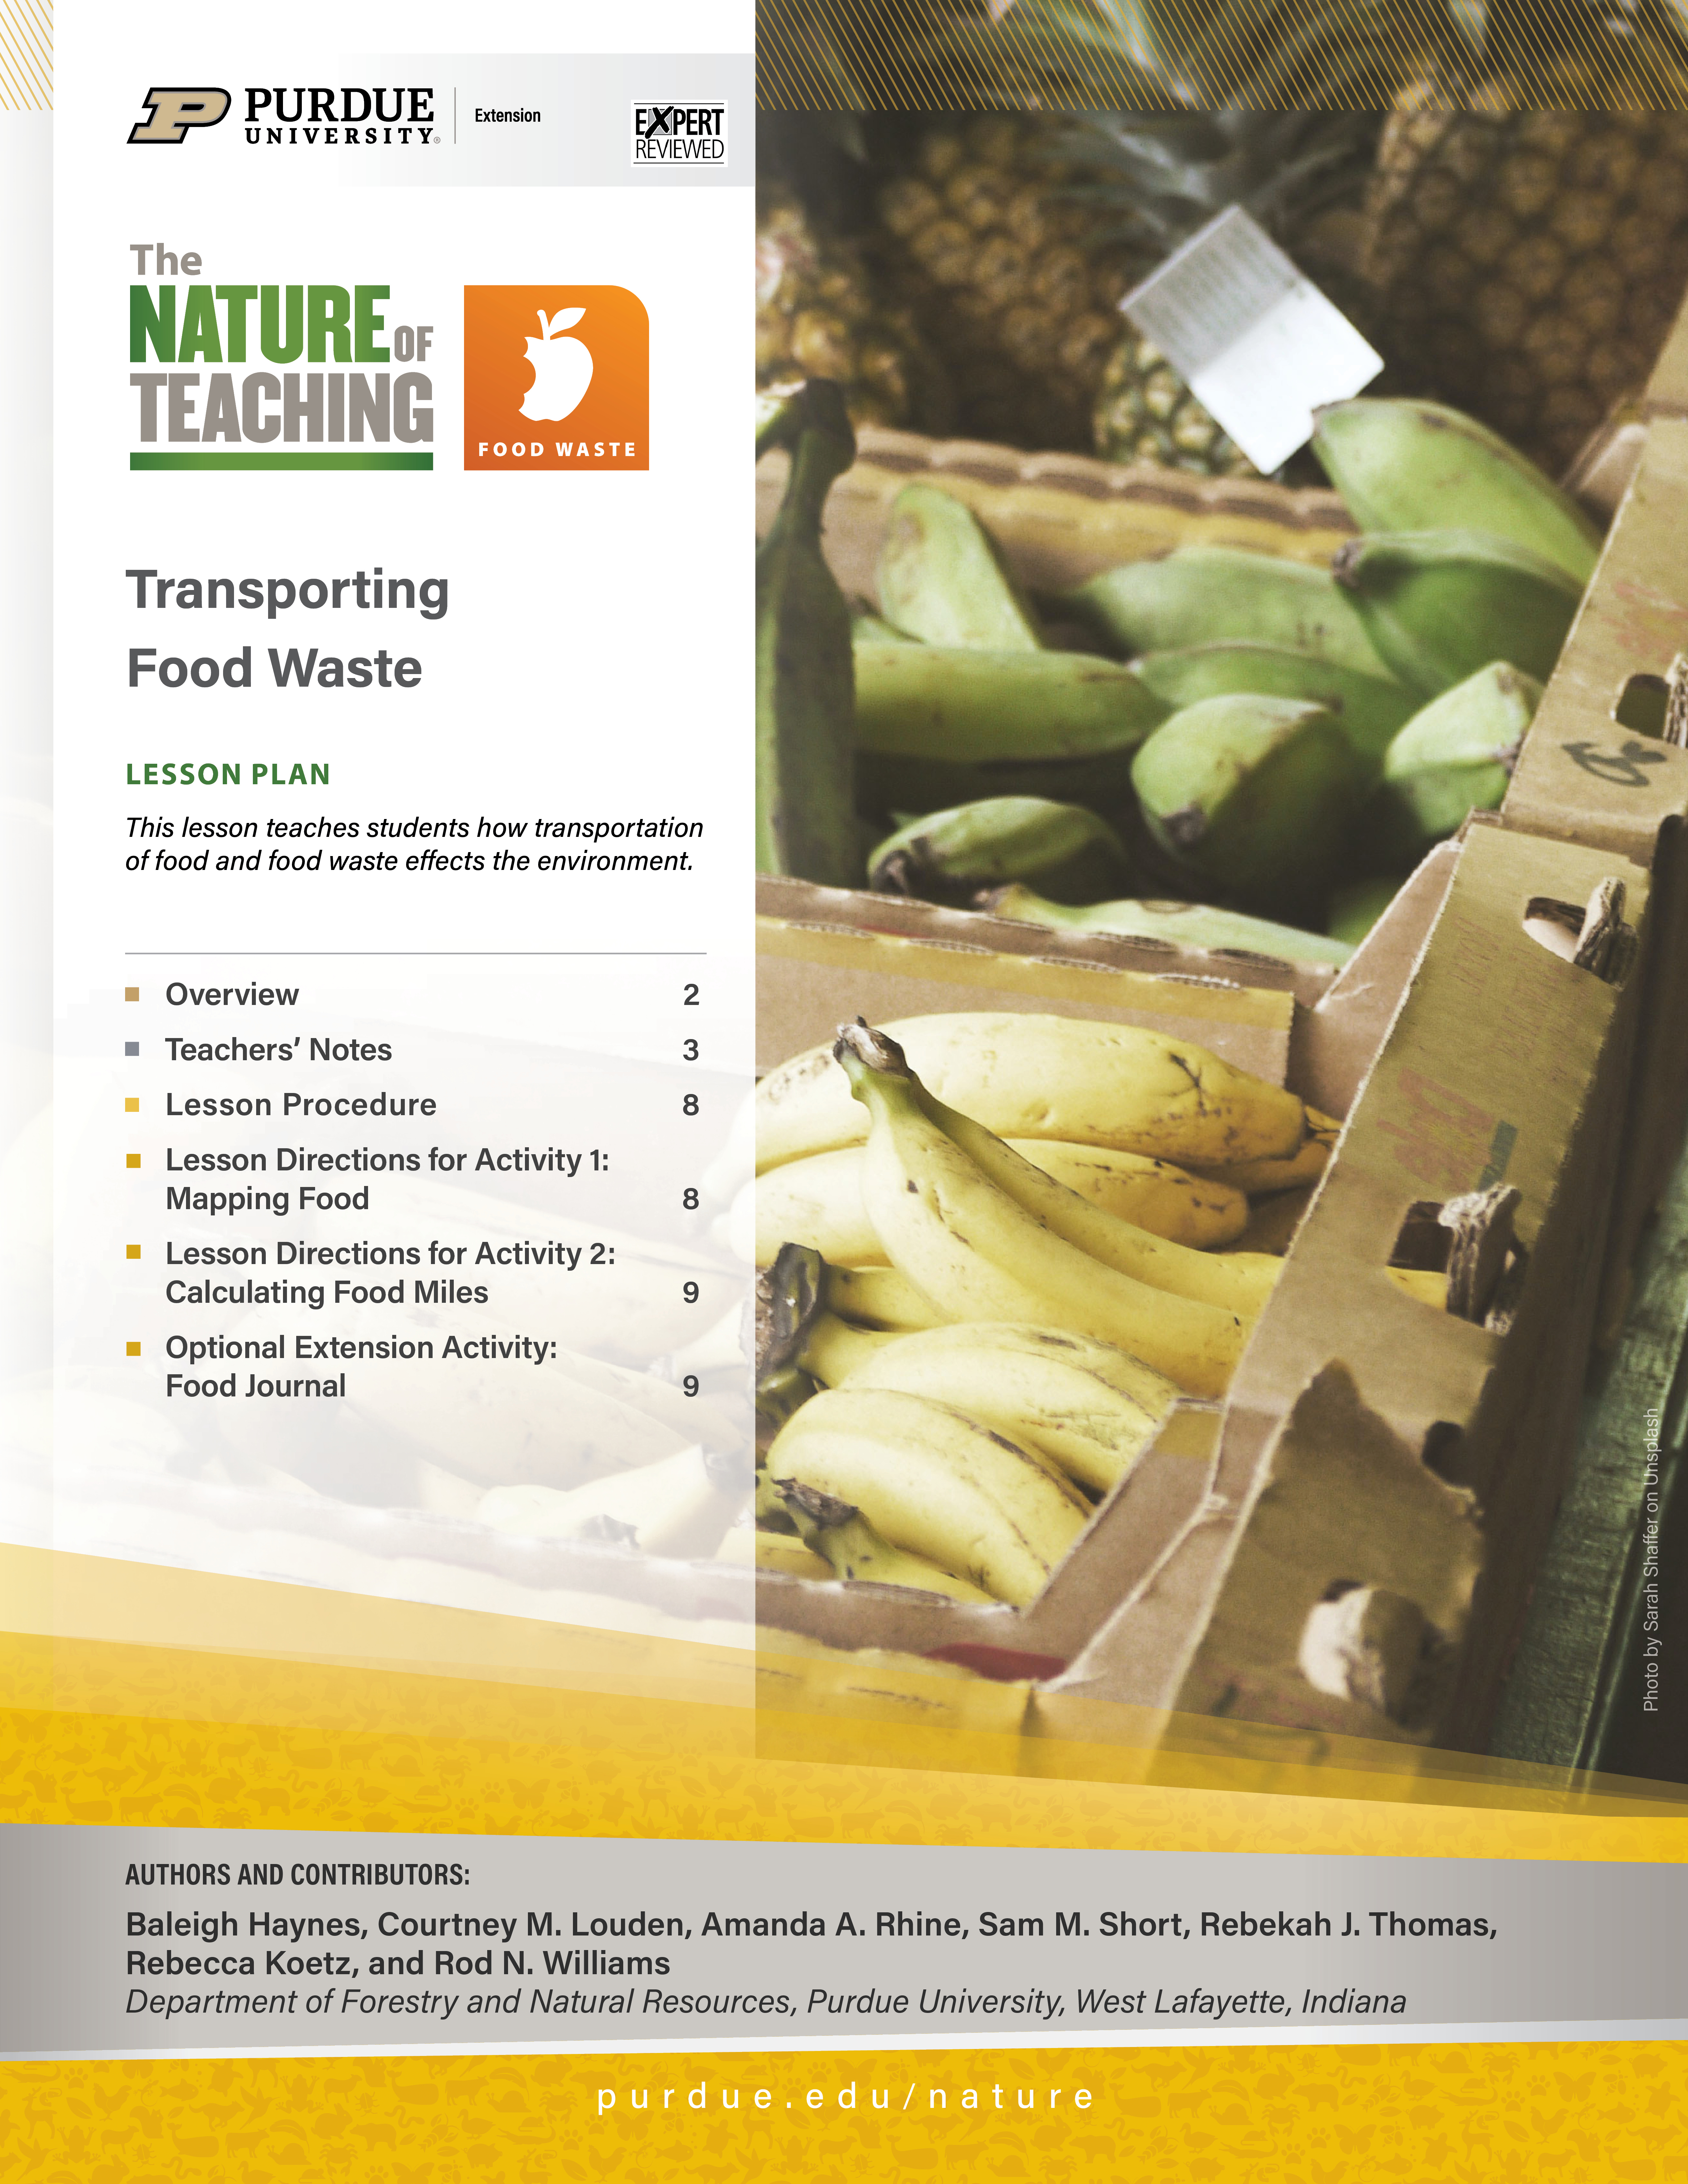 Transporting Food Waste